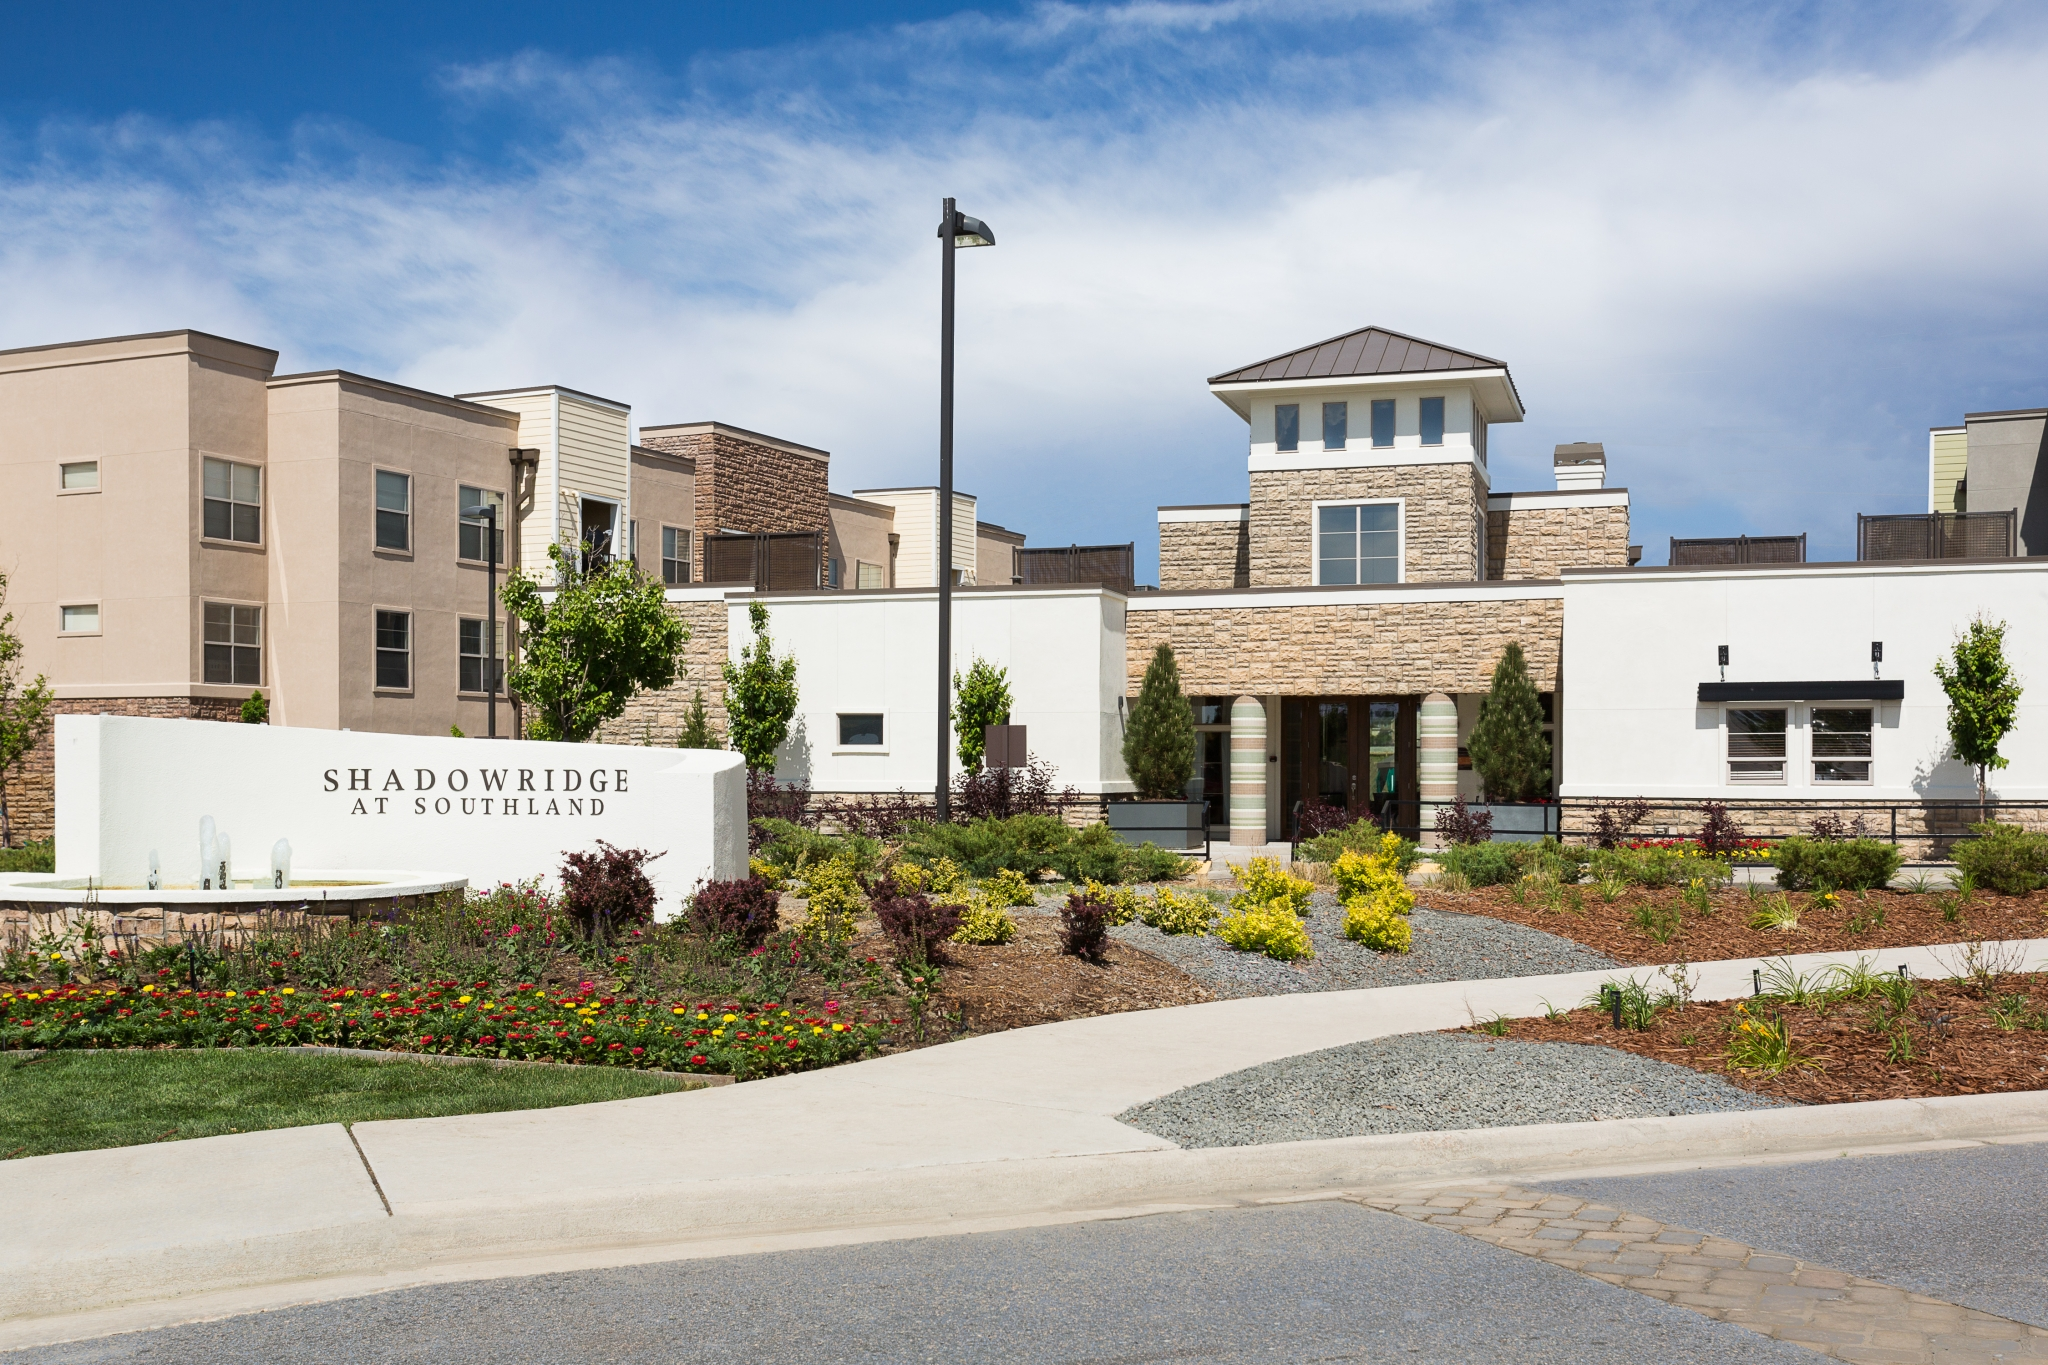 Shadow Ridge at Southlands - Welcome to Shadow Ridge at Southlands, an apartment community located in Aurora, Colorado, where picturesque landscaping and all the comforts of modern luxury come together to form the perfect setting for your lifestyle